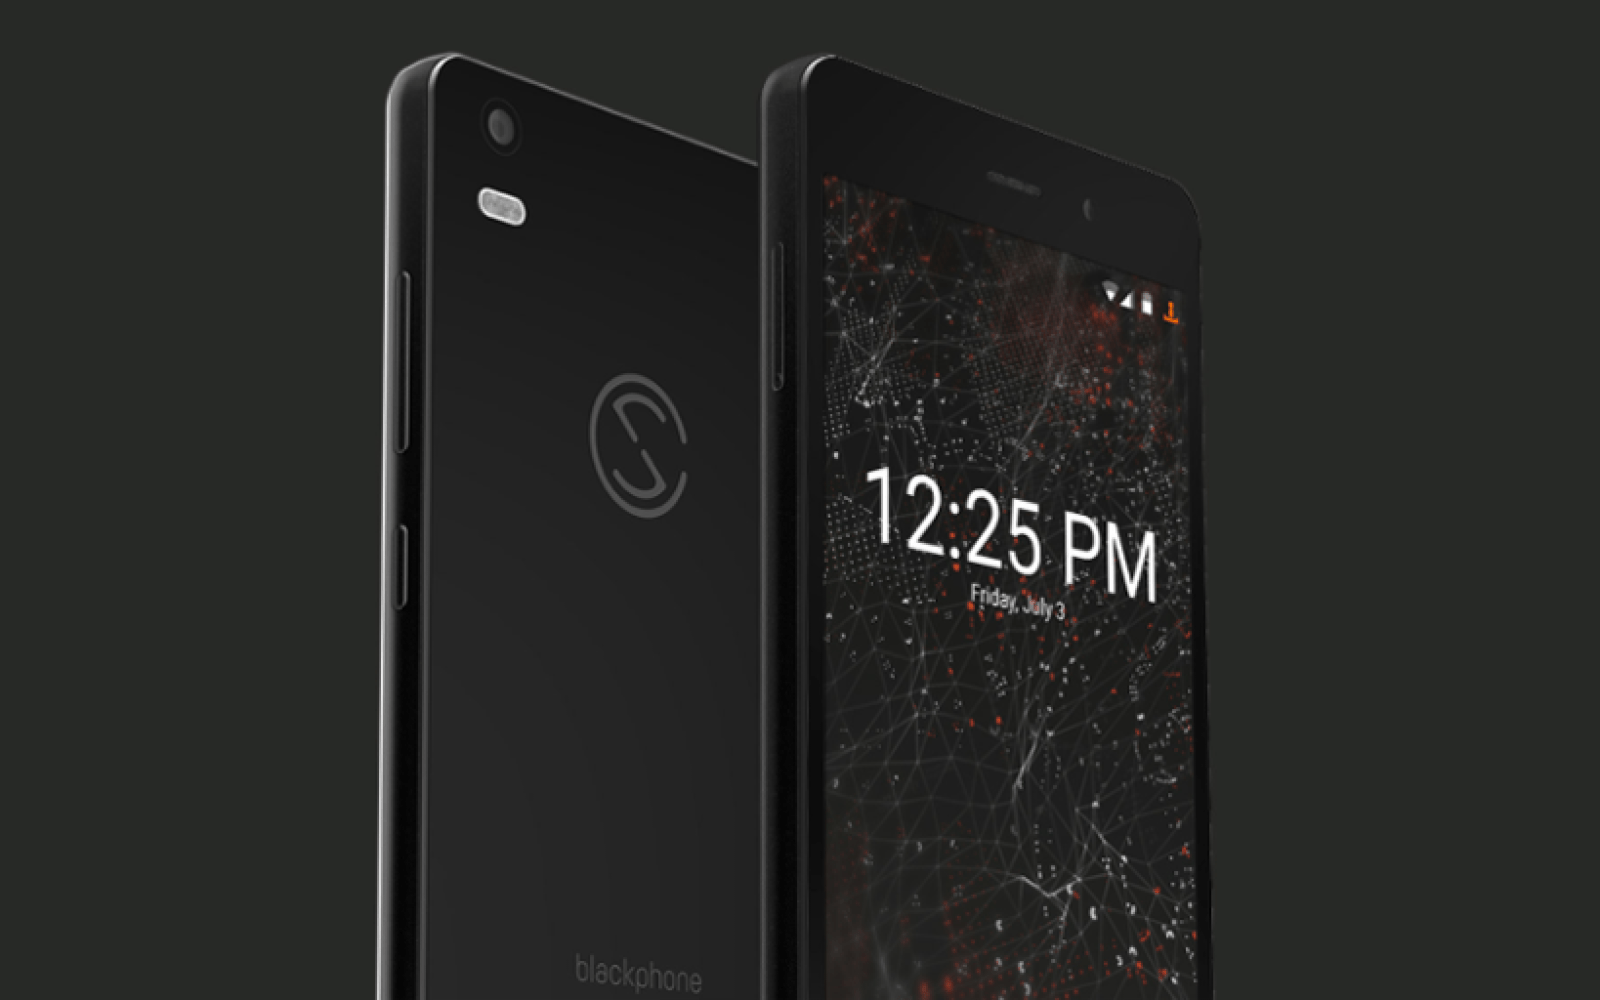 Security-focused Blackphone 2 now available for pre-order, shipping next month – but no price yet